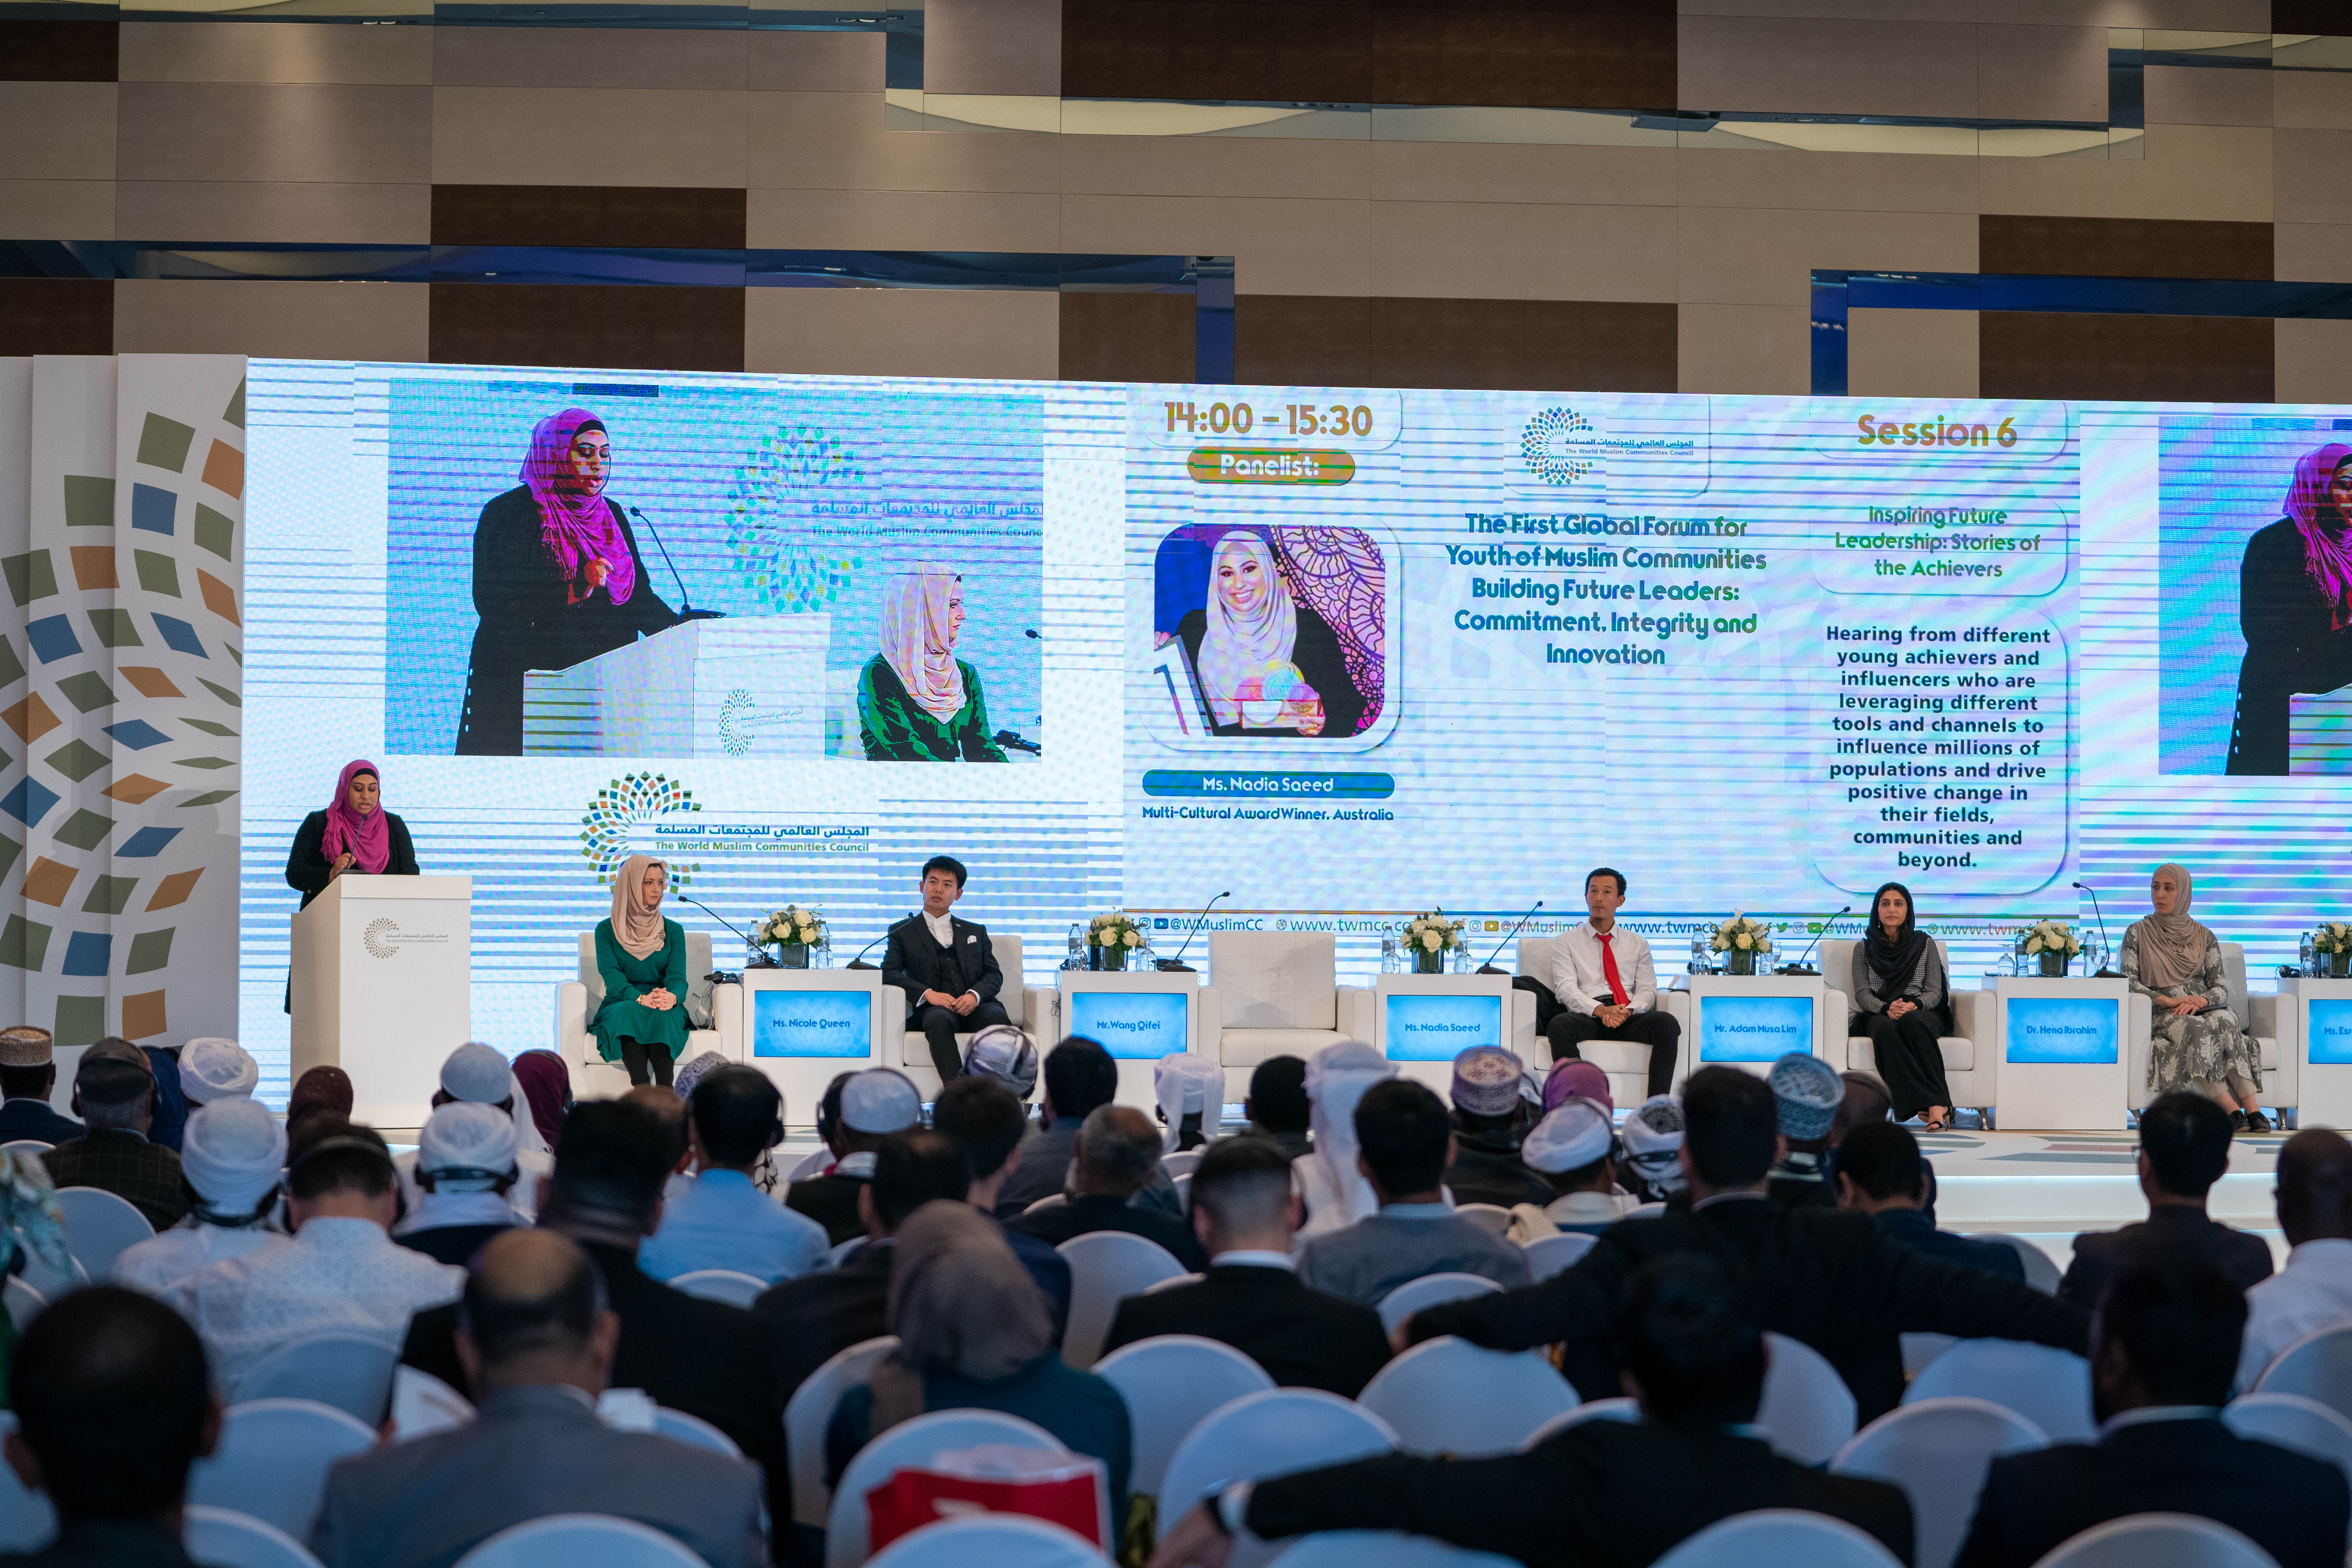 The conclusion of the first day's sessions of the First Global Forum for Youth of Muslim Communities